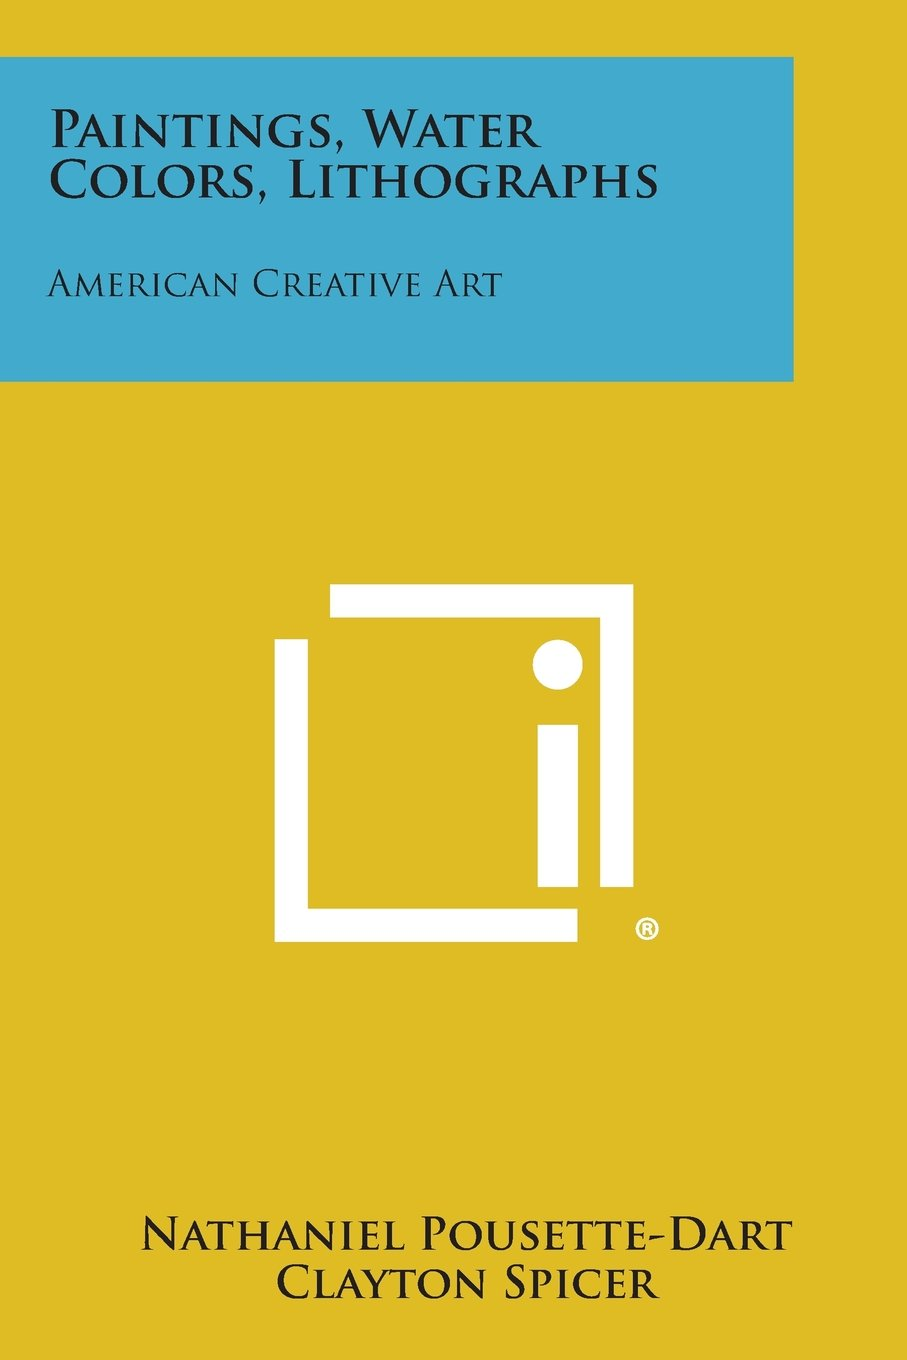 Download Paintings, Water Colors, Lithographs: American Creative Art ebook